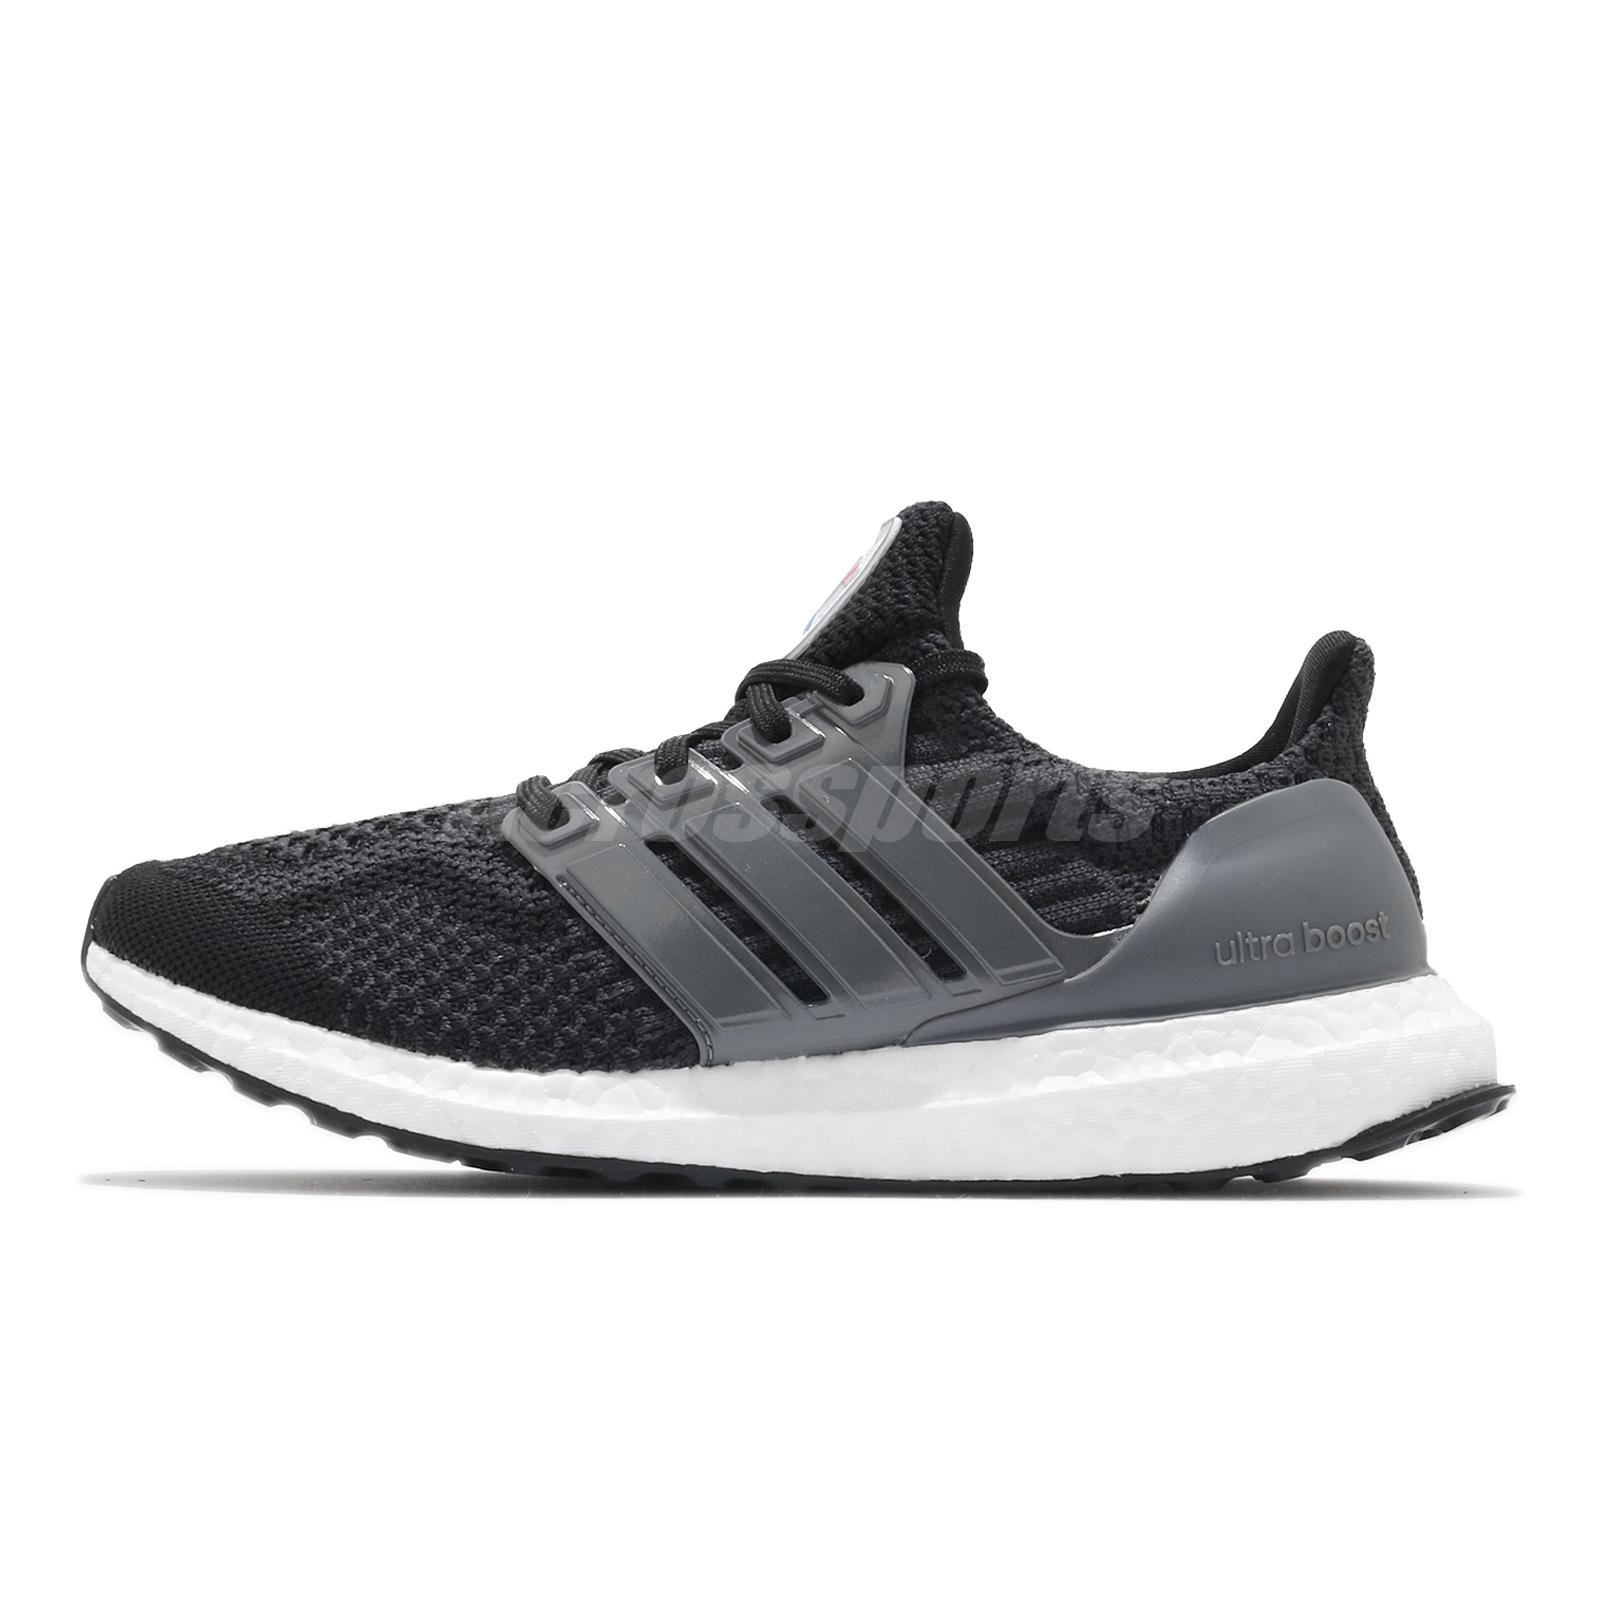 NASA x adidas UltraBOOST 5.0 DNA Space Race Pack Black Carbon ...